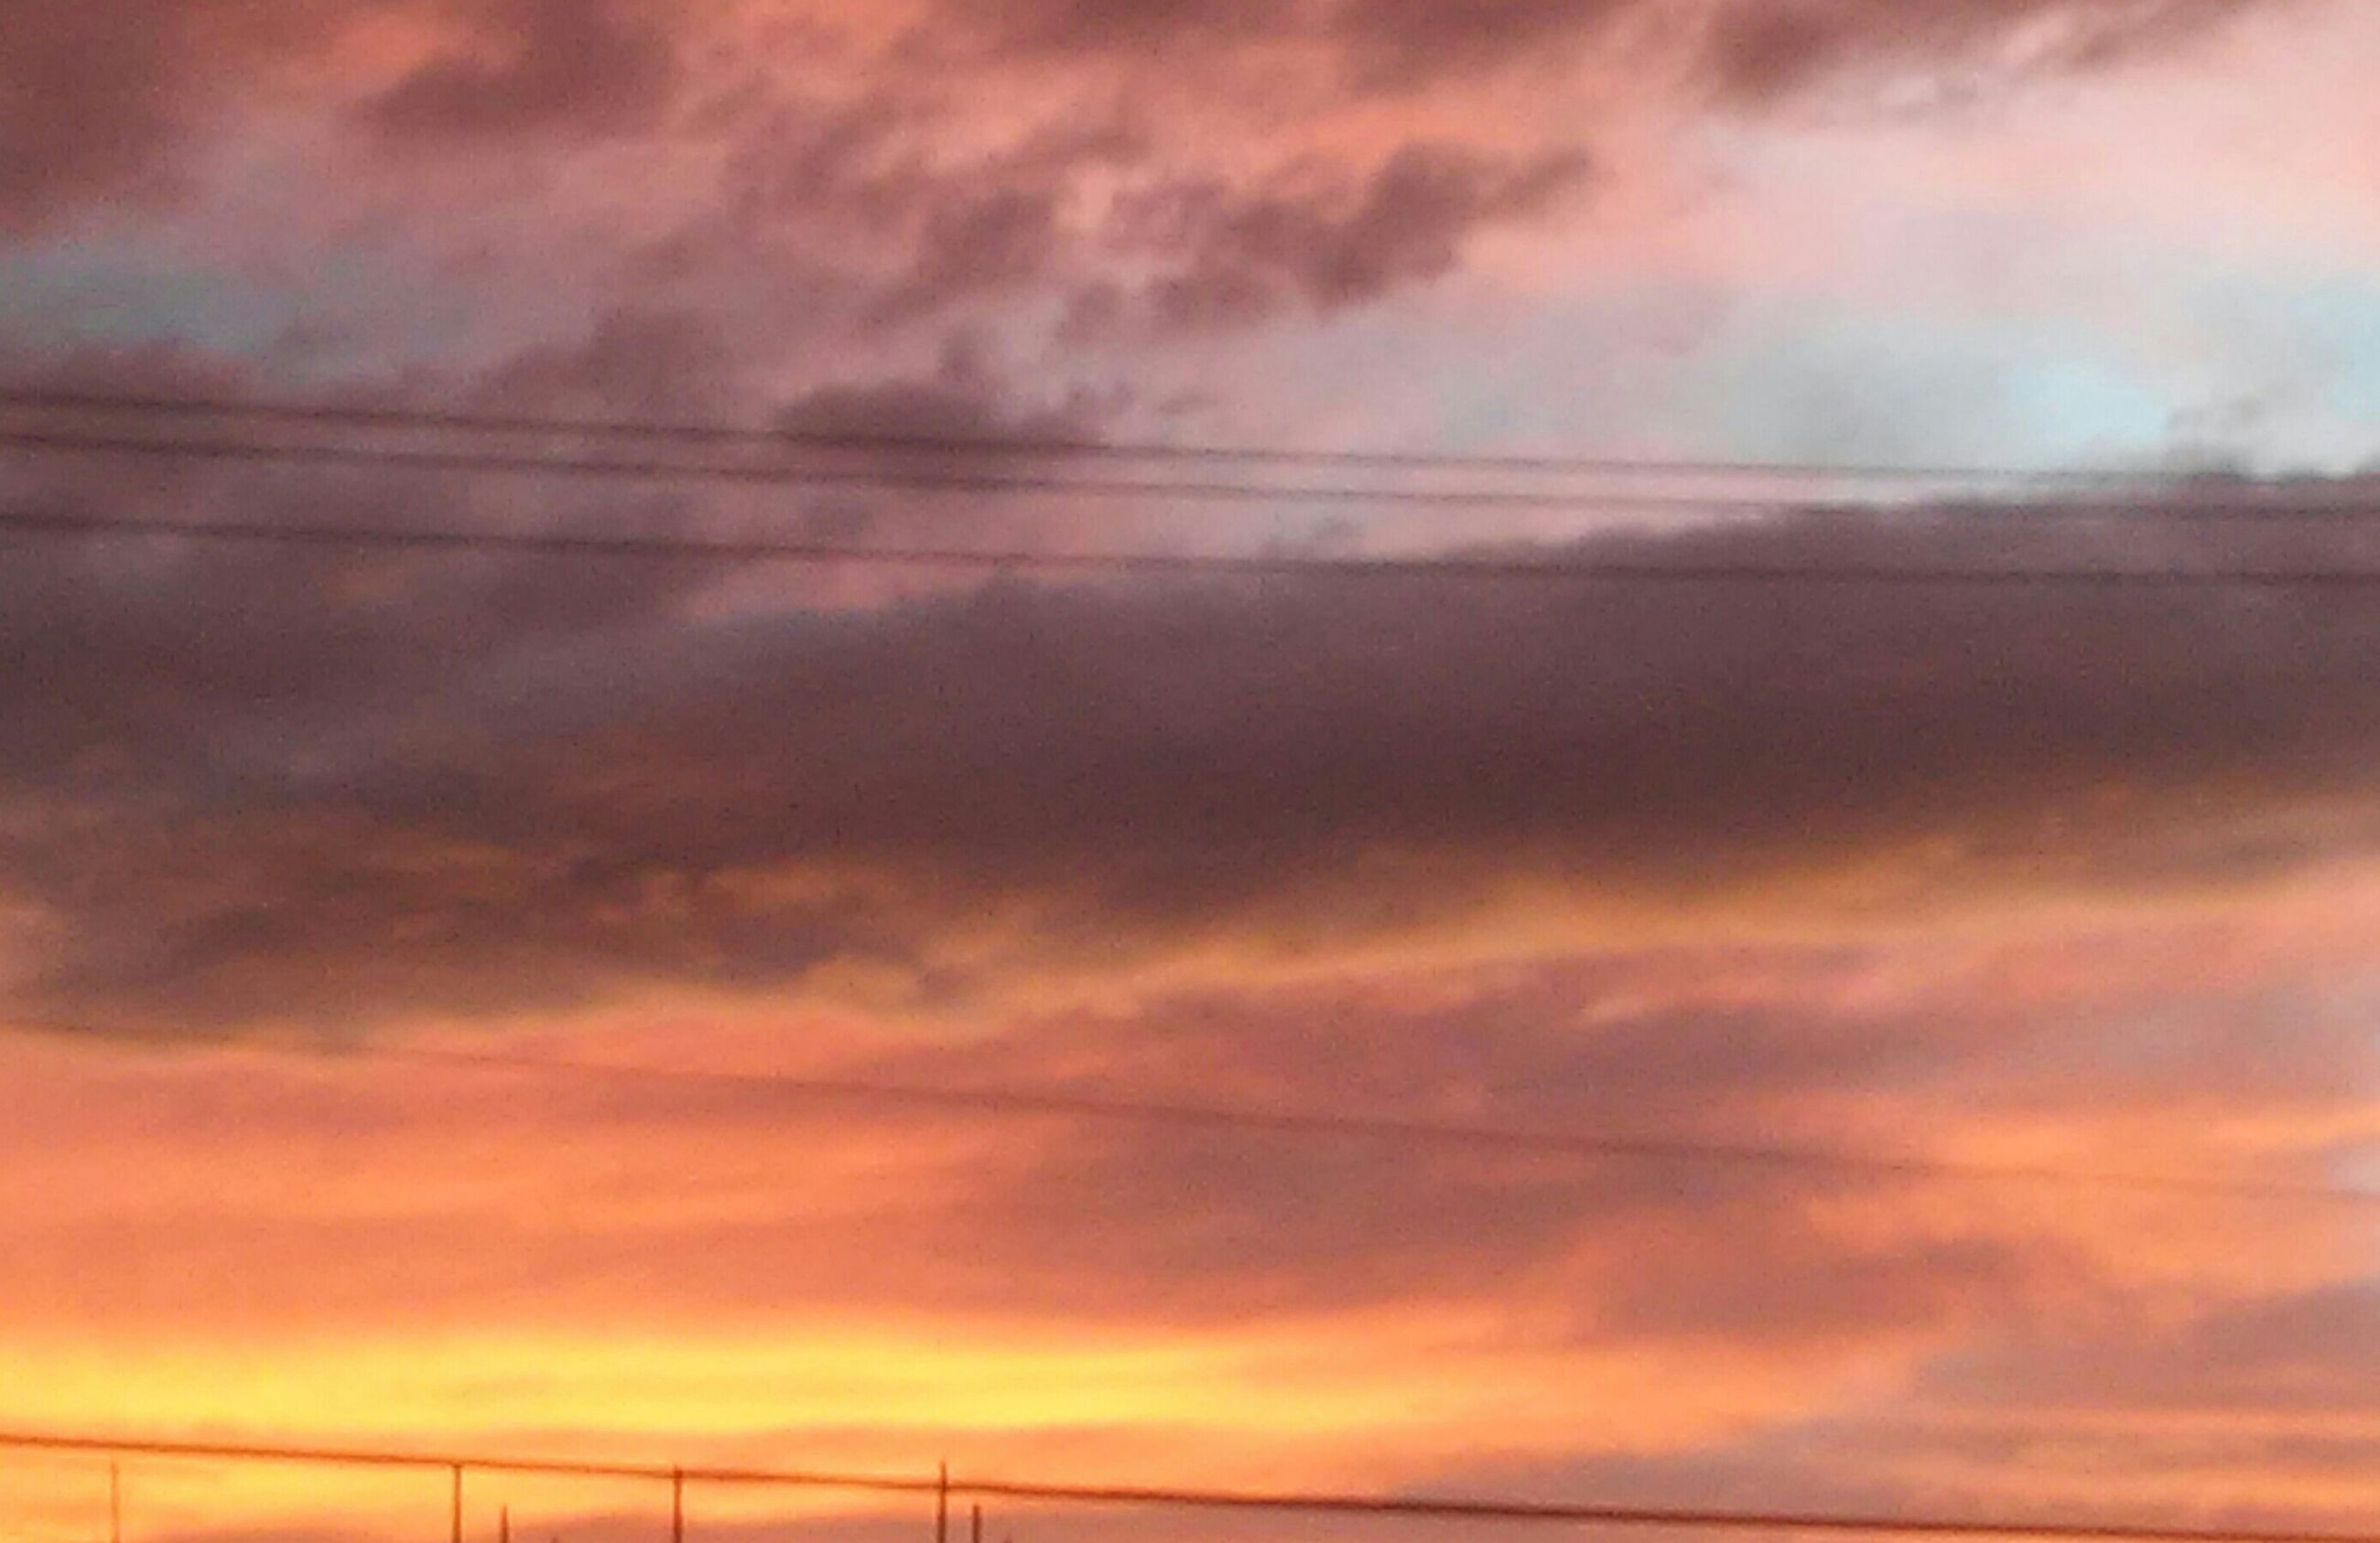 sky, sunset, cloud - sky, low angle view, cloudy, orange color, scenics, beauty in nature, cloud, dramatic sky, tranquility, nature, cloudscape, tranquil scene, weather, sky only, backgrounds, overcast, idyllic, no people